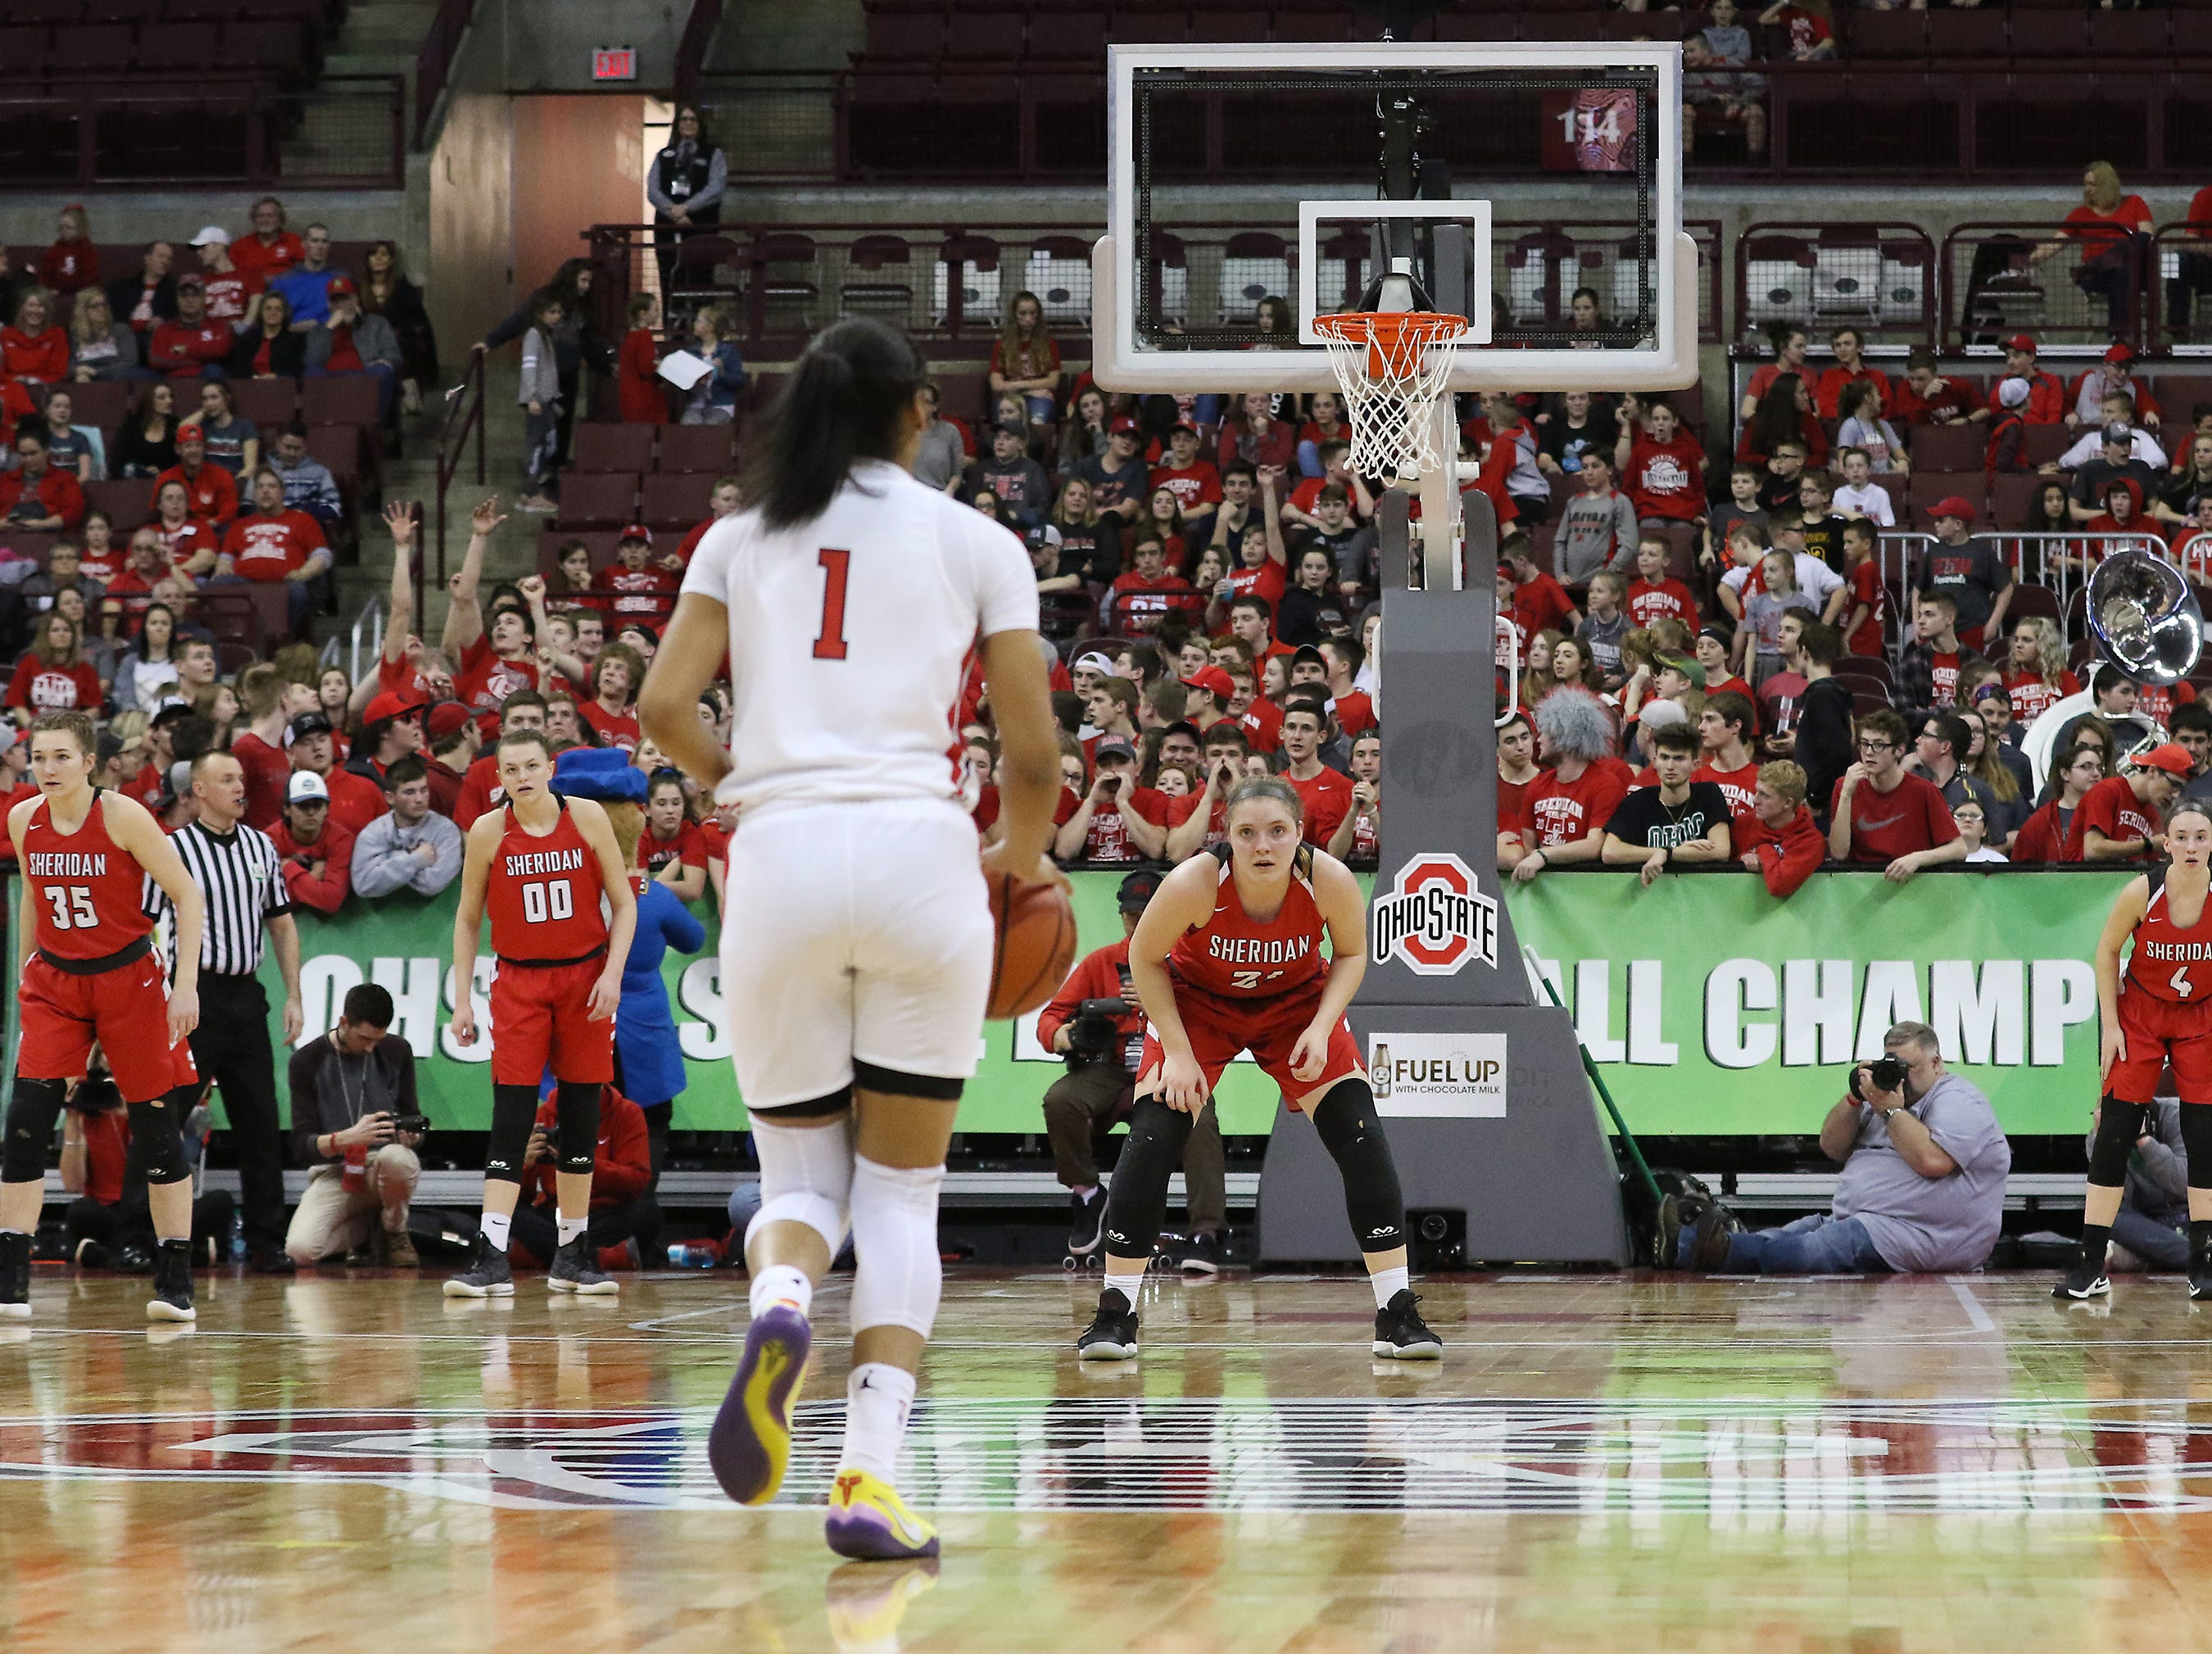 South Carolina-bound and nationally-ranked player Zia Cooke of Toledo Rogers heads into the Sheridan defense during the DII state semis in Columbus on Thursday.